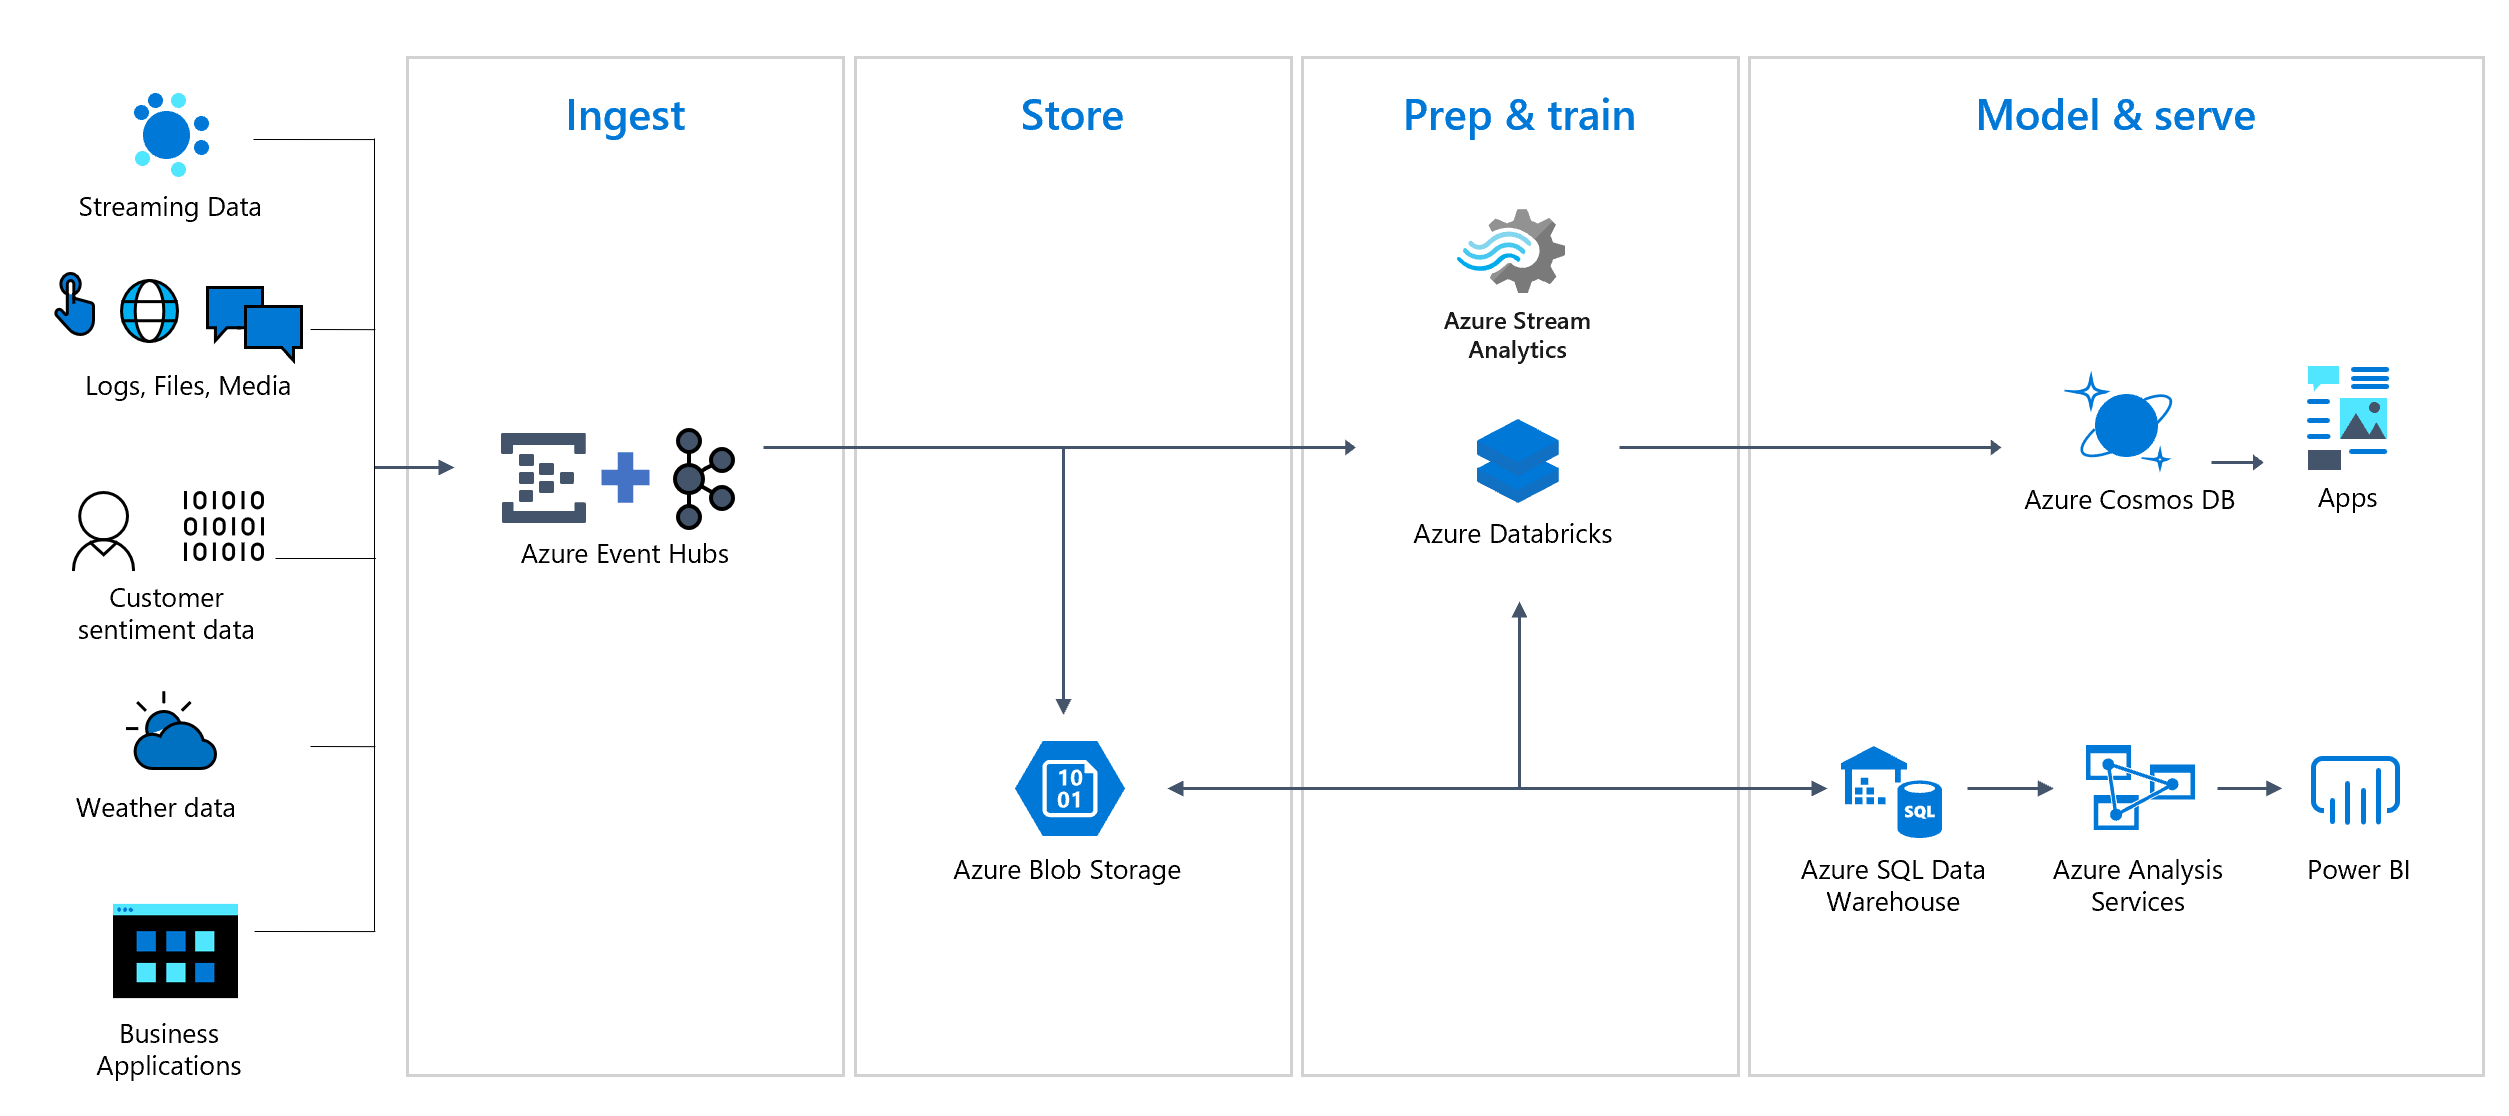 Announcing self-serve experience for Azure Event Hubs Clusters